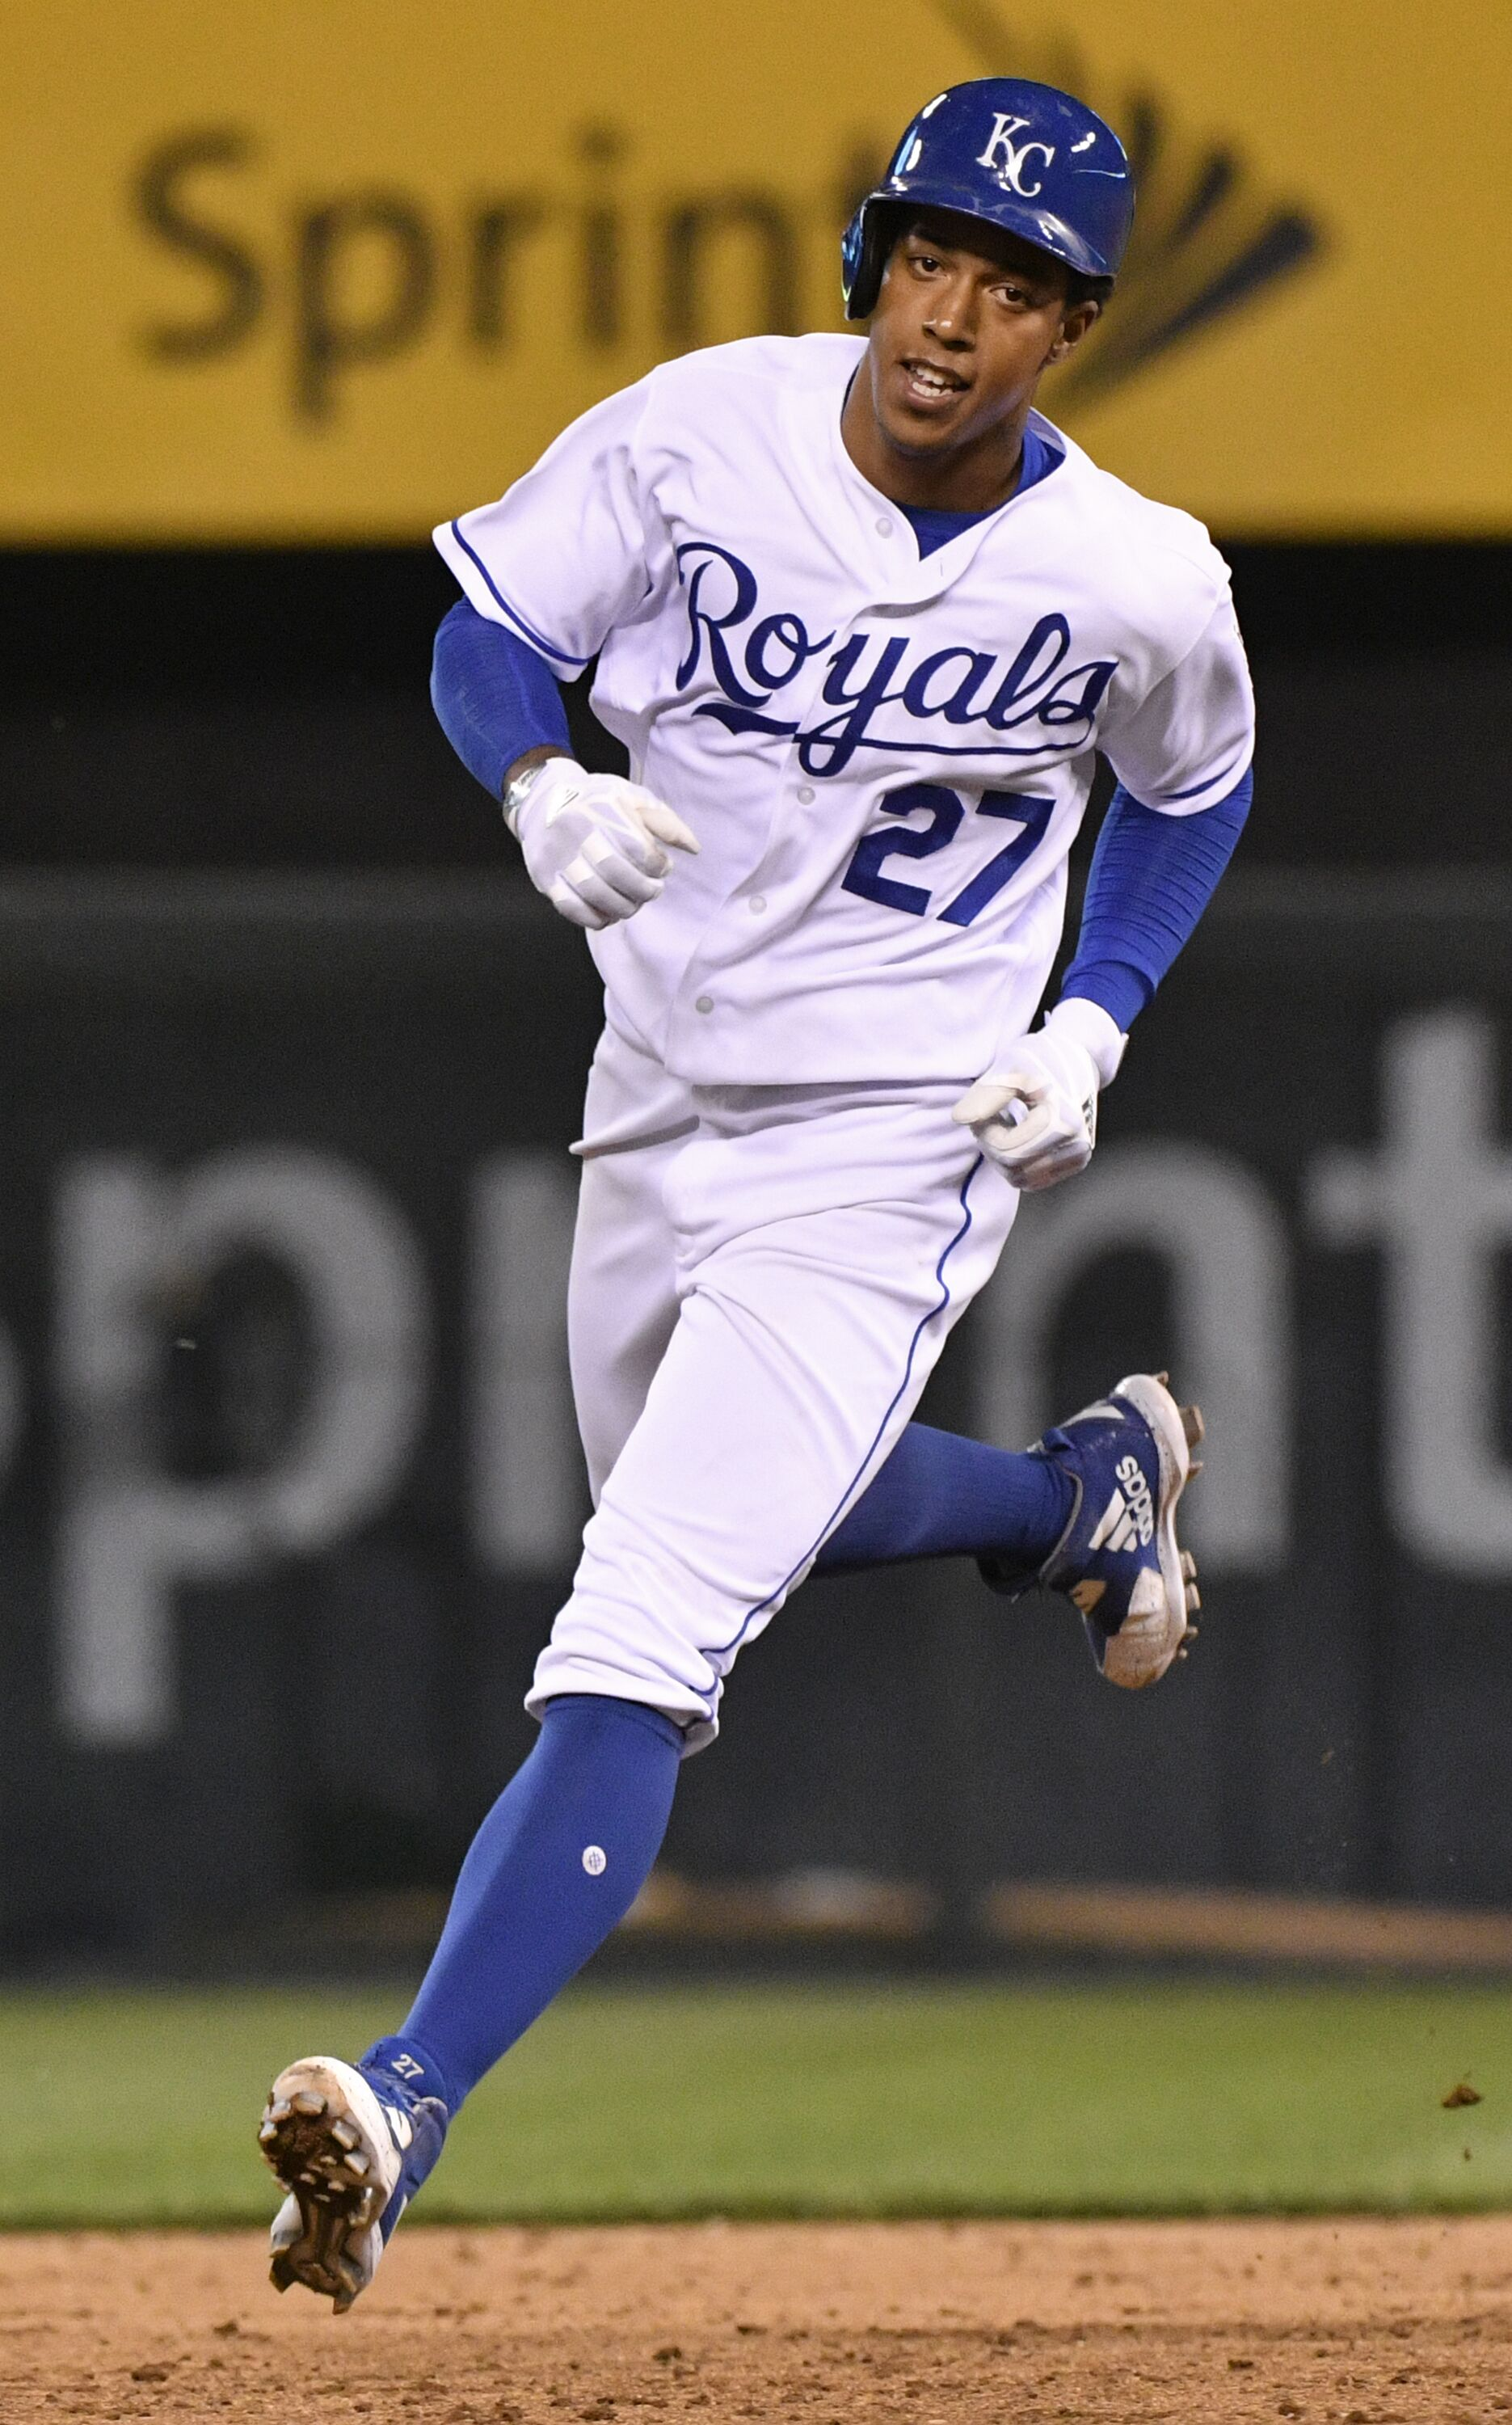 1e567766683 Kansas City Royals  2018 Is The Year of Raul A. Mondesi